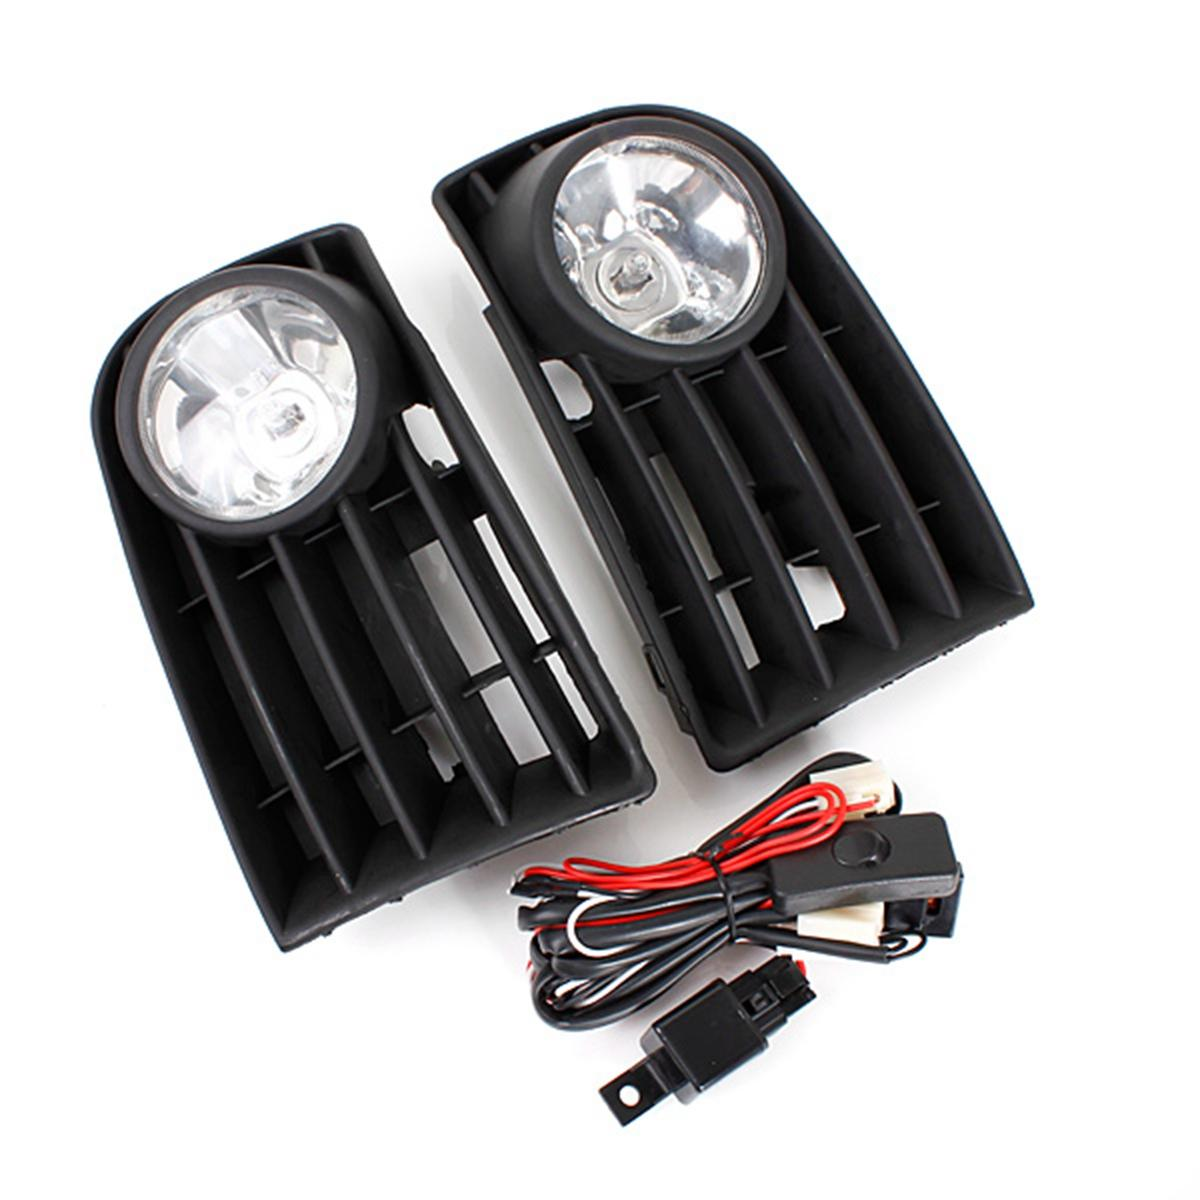 Car Front Bumper Fog Lights Grill Kit with 55W H3 Bulb White for VW Golf  Mk5 Rabbit 06-09